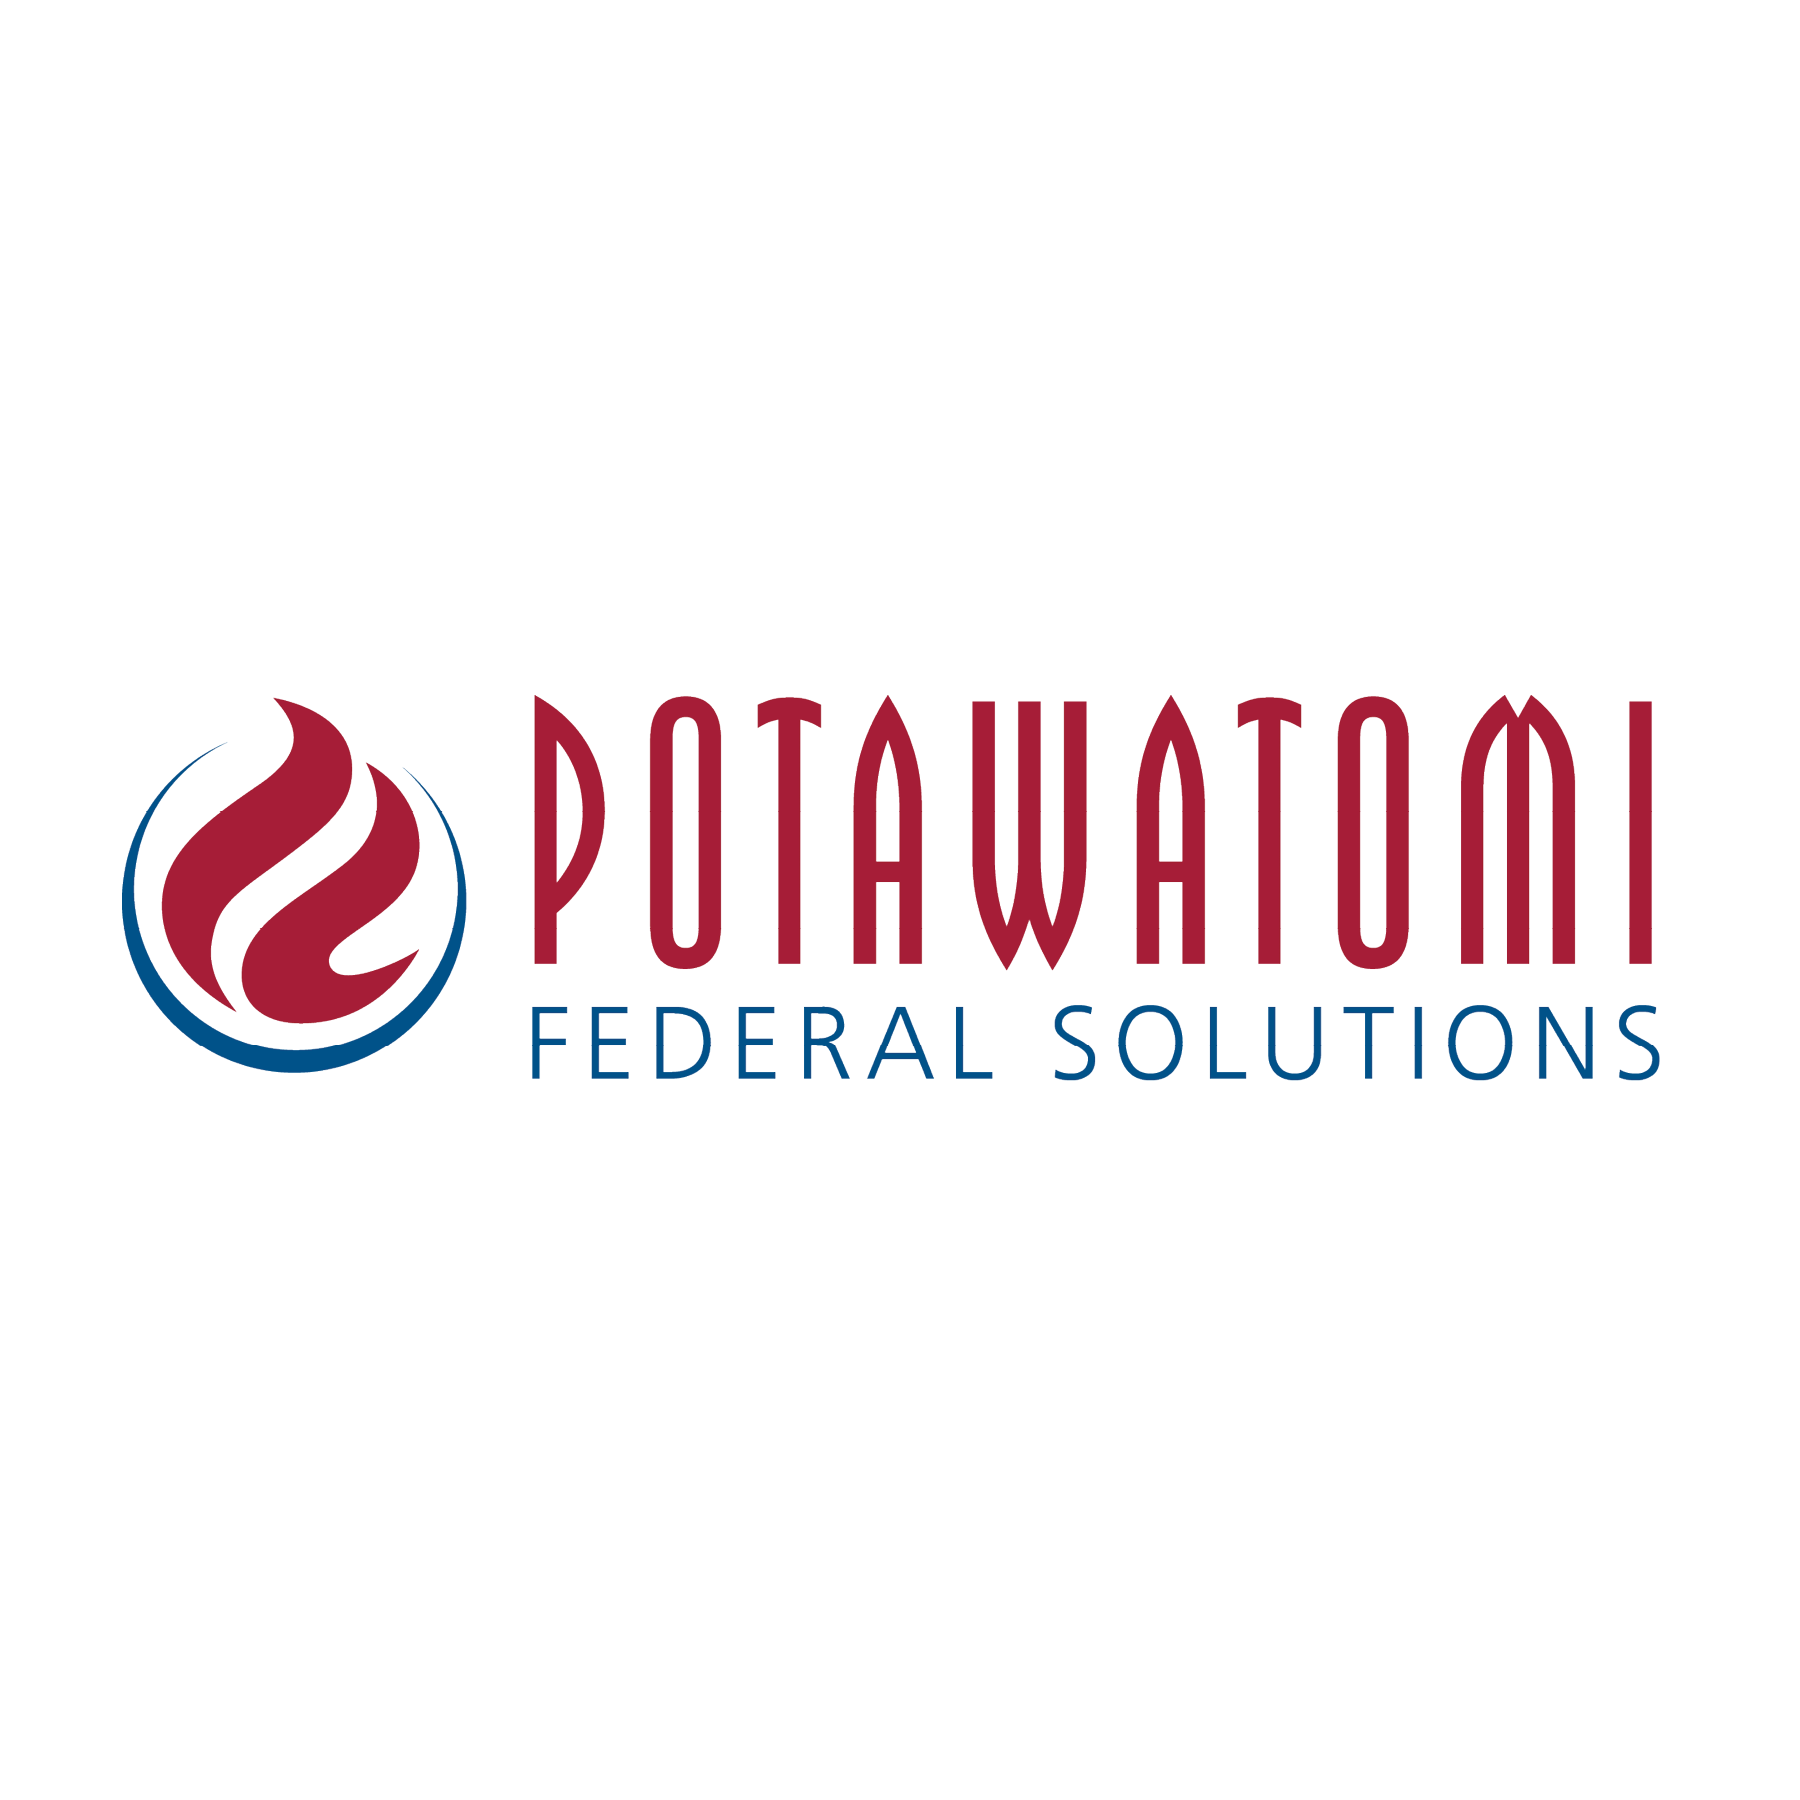 Potawatomi Federal Solutions (PFS) provides shared services and common administrative support to subsidiaries that focus on federal services and products. By utilizing these services, the subsidiaries reduce indirect costs, maximize efficiency, optimize shared resources, and increase productivity.